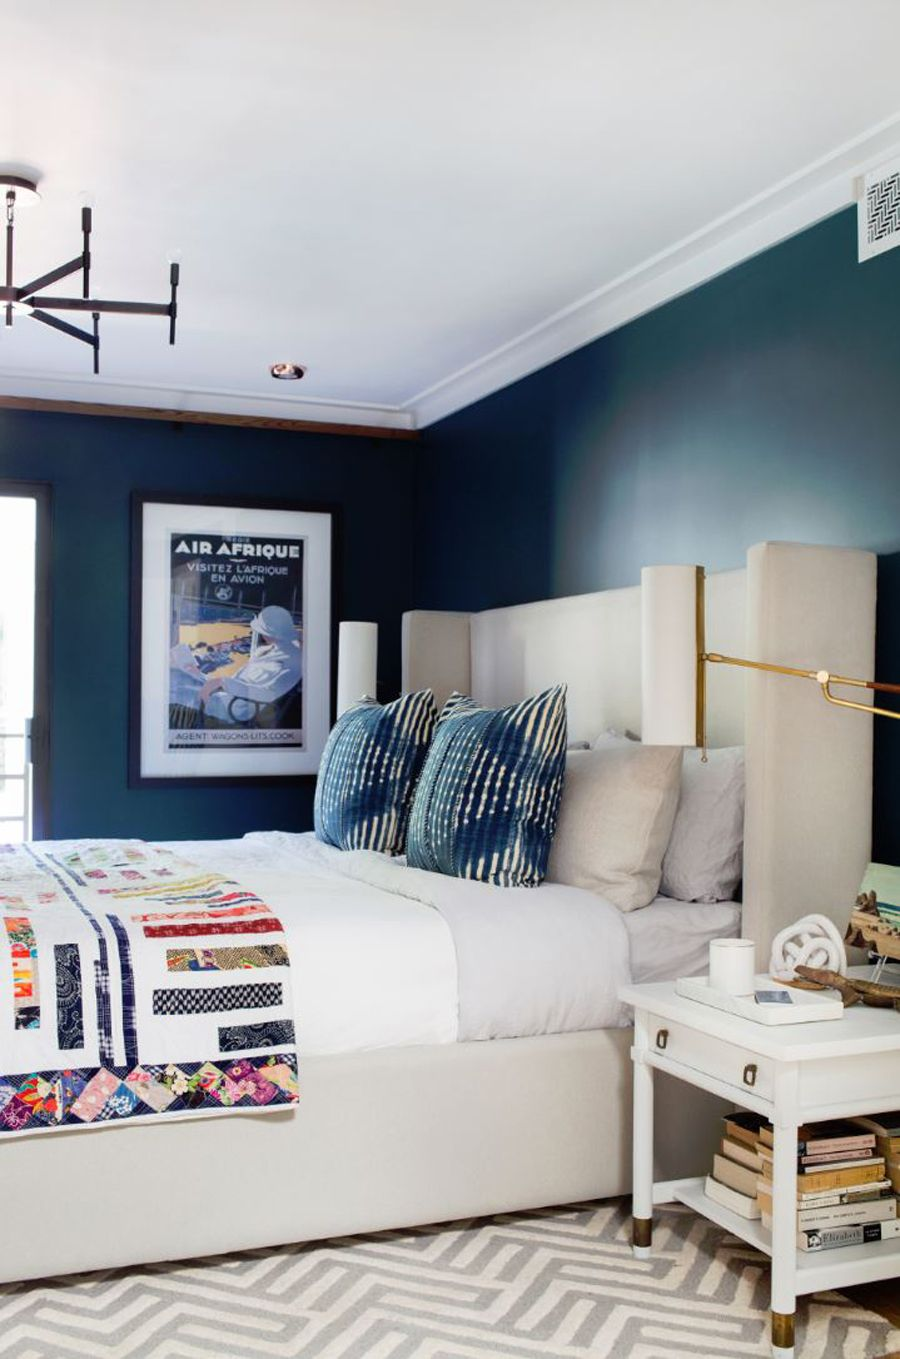 Cozy condo living rooms  cozy bedrooms thatull inspire you to redesign yours  condos